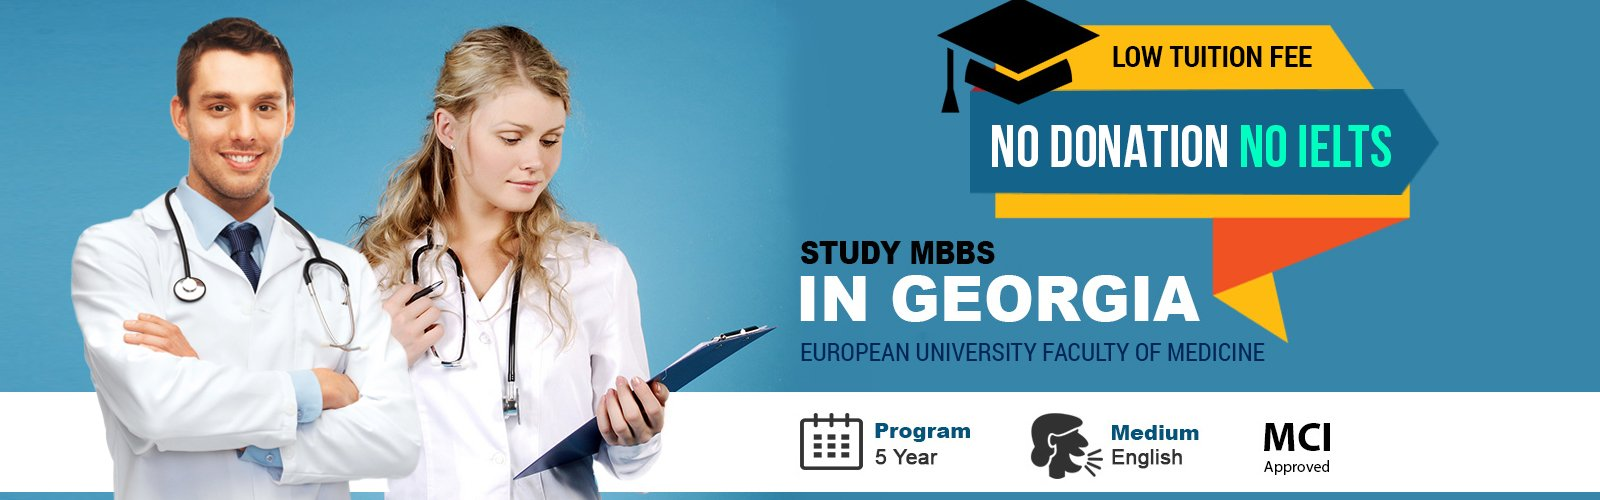 mbbs in georgia at low cost.